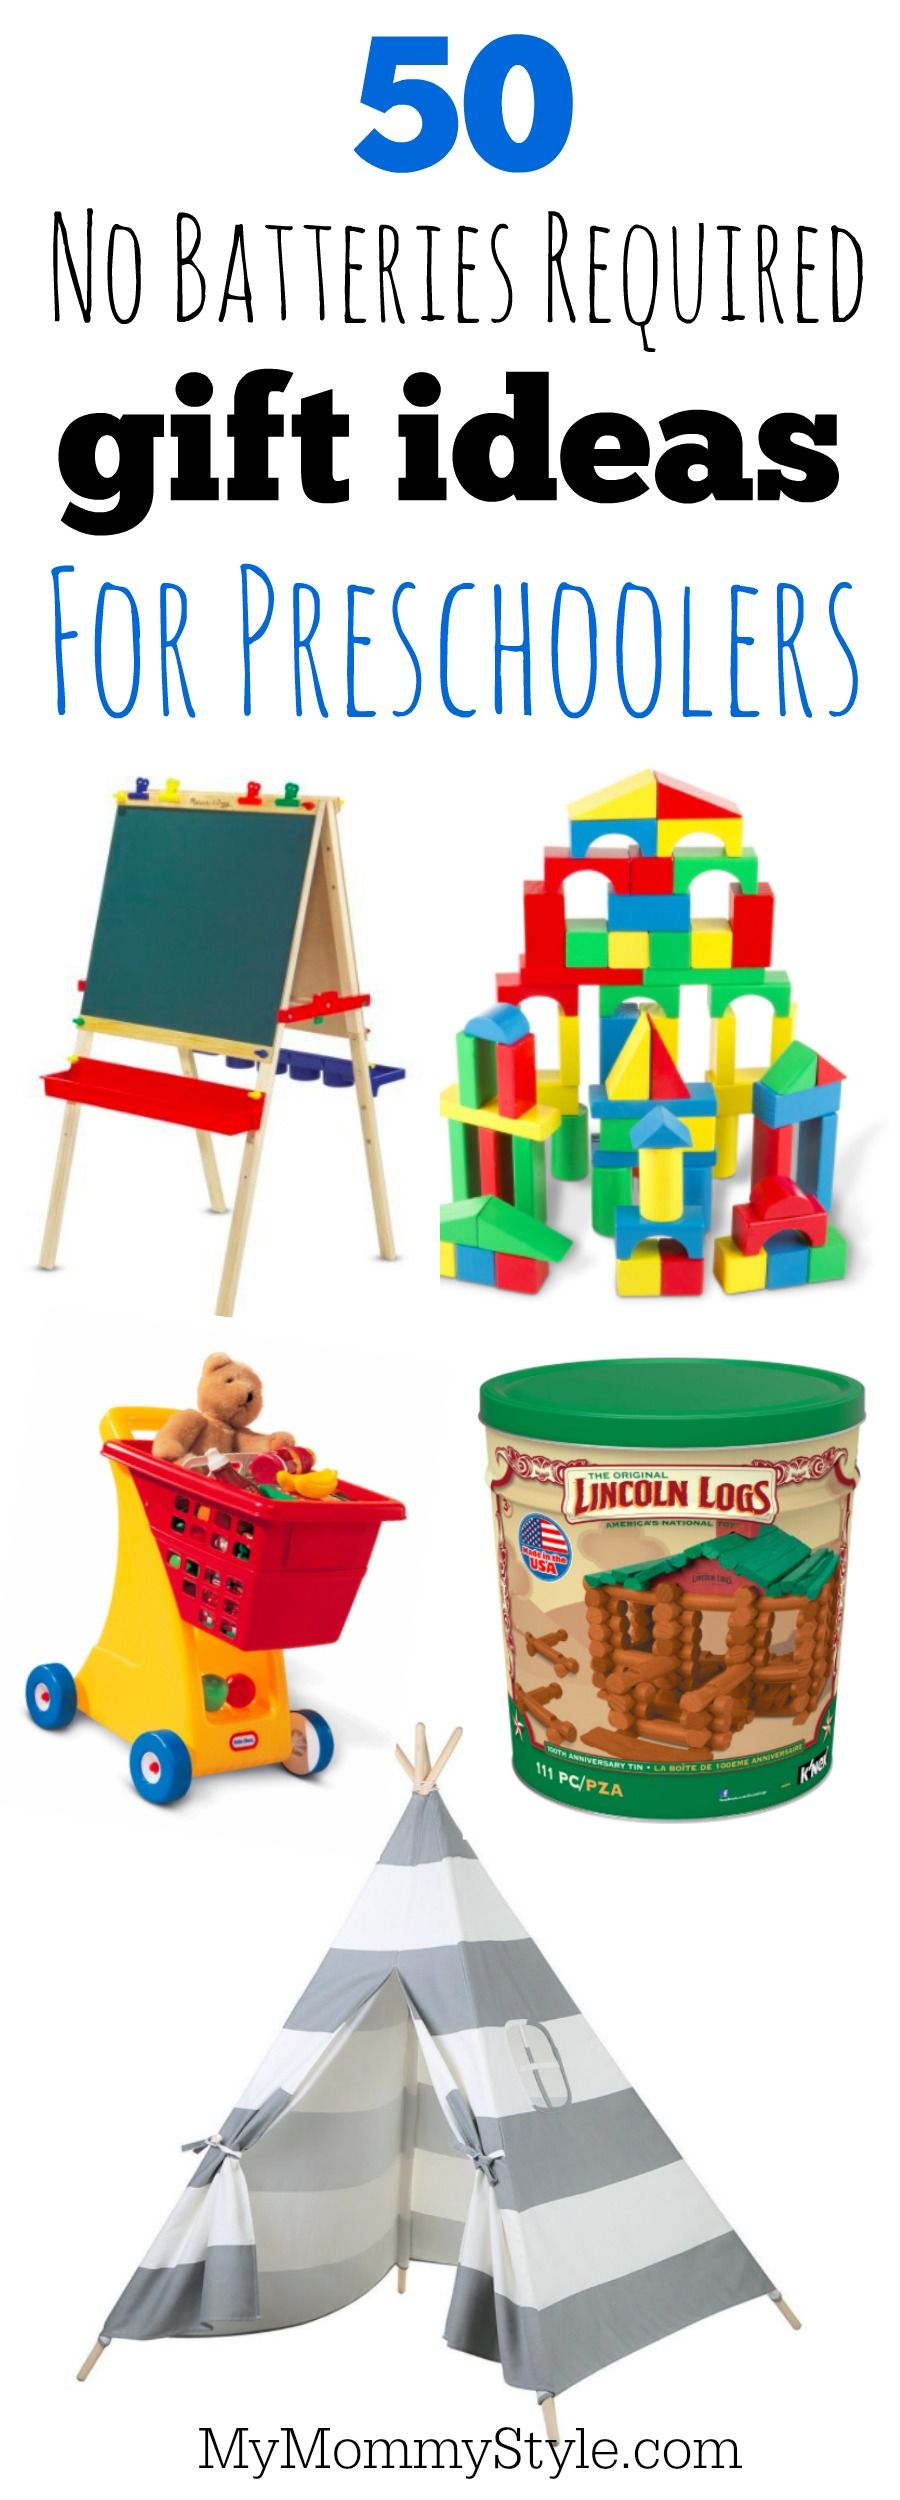 There are so many great options for battery free toys for